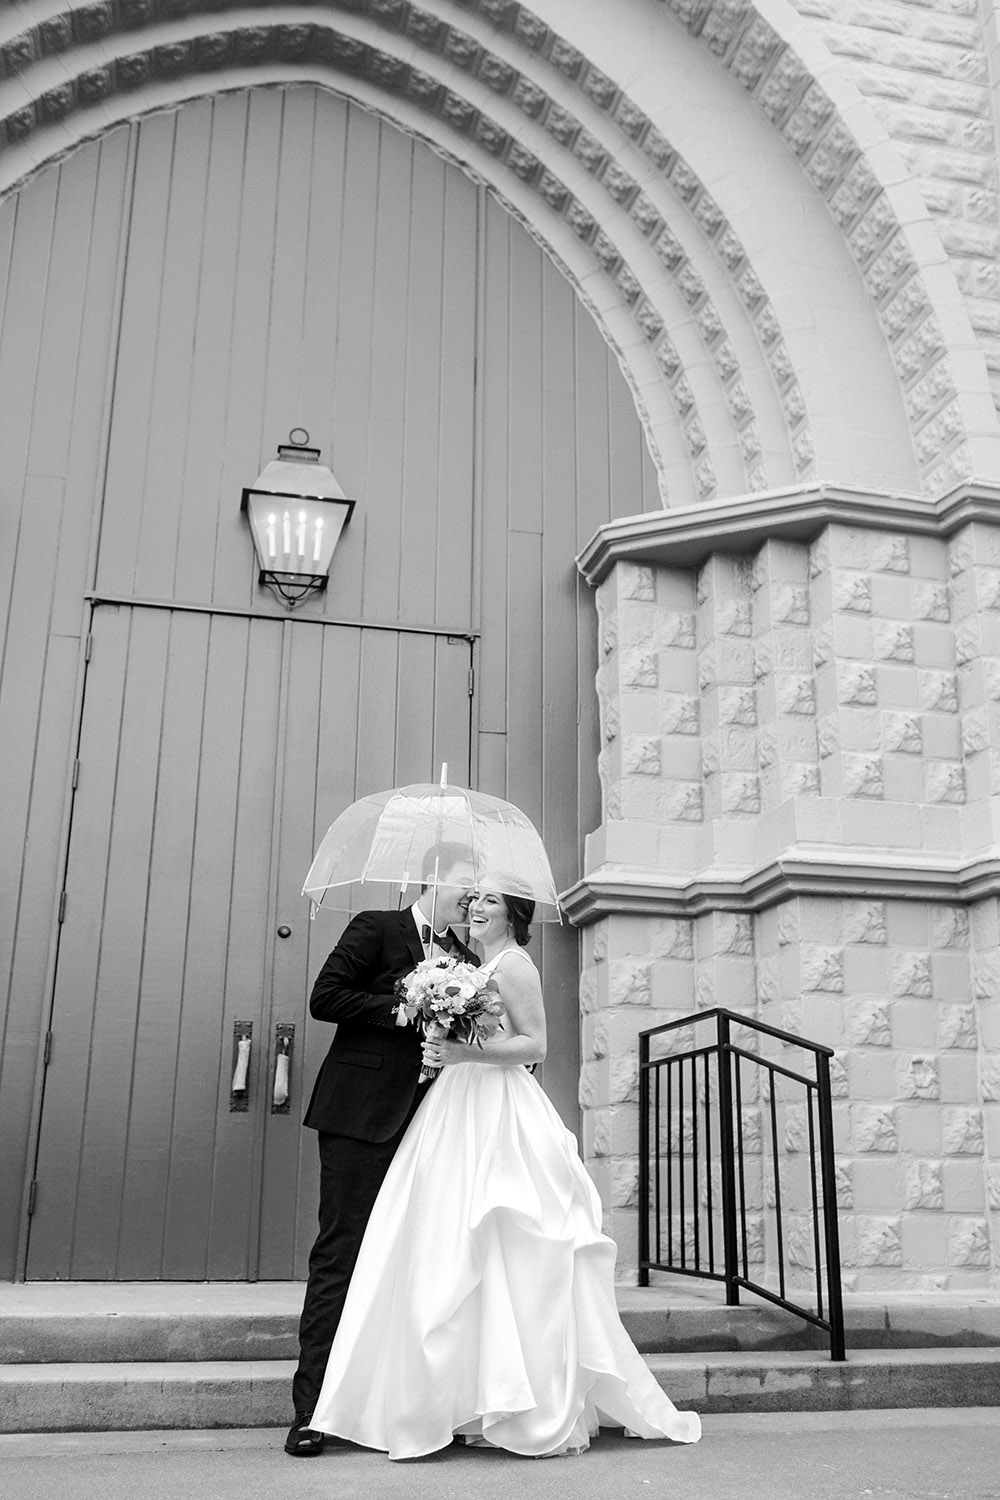 Black and white photo of a bride and groom under an umbrella